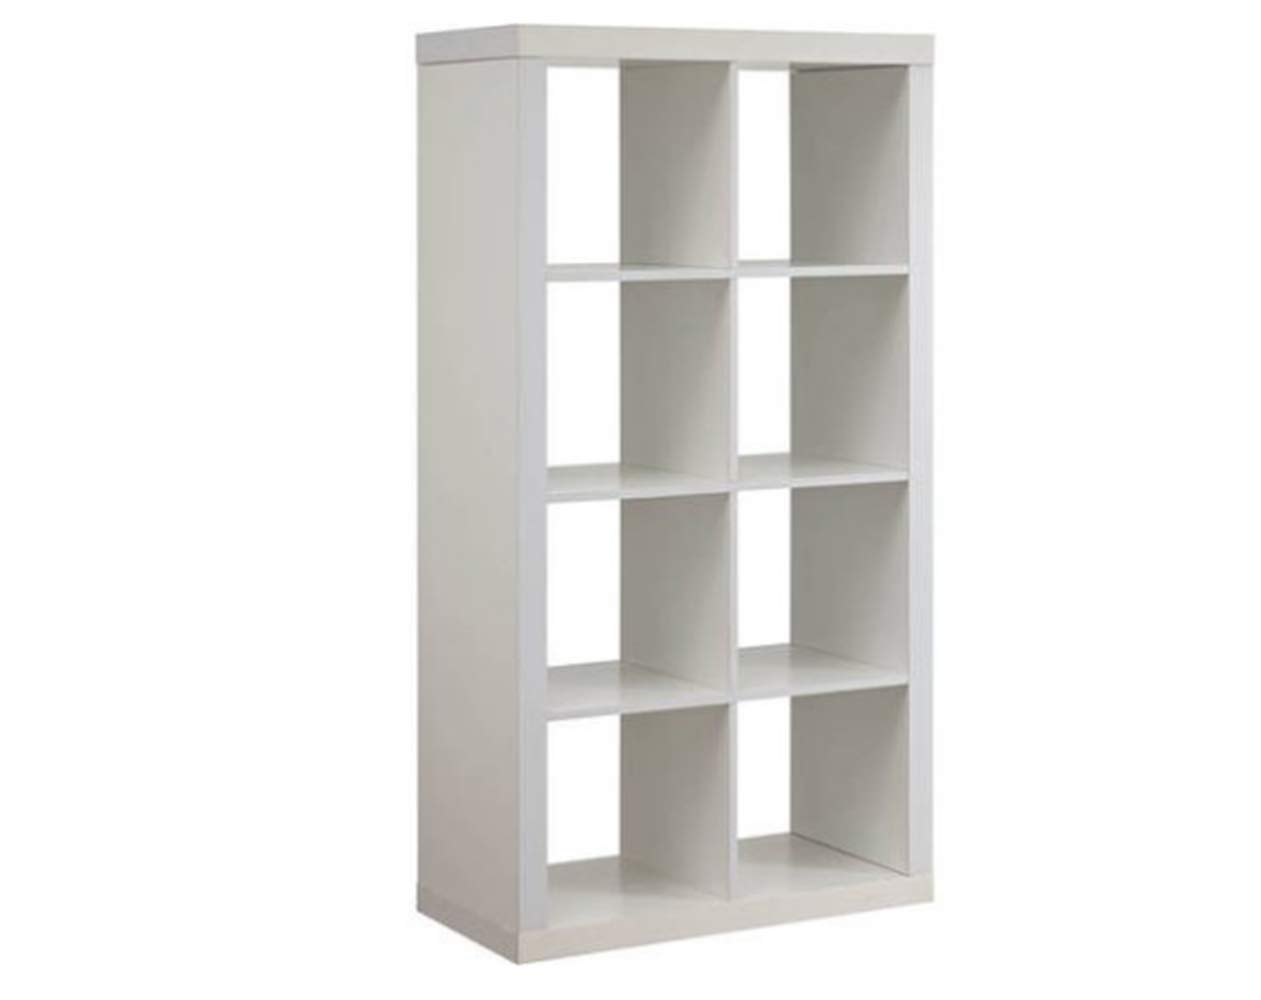 BHR White Bookcase Bookshelf, 8 Cubes, Premium Quality,Durable & High Resistant Construction, Wooden, Stylish & Modern Design, Storage, Easy Assembly & E-Book by BHR